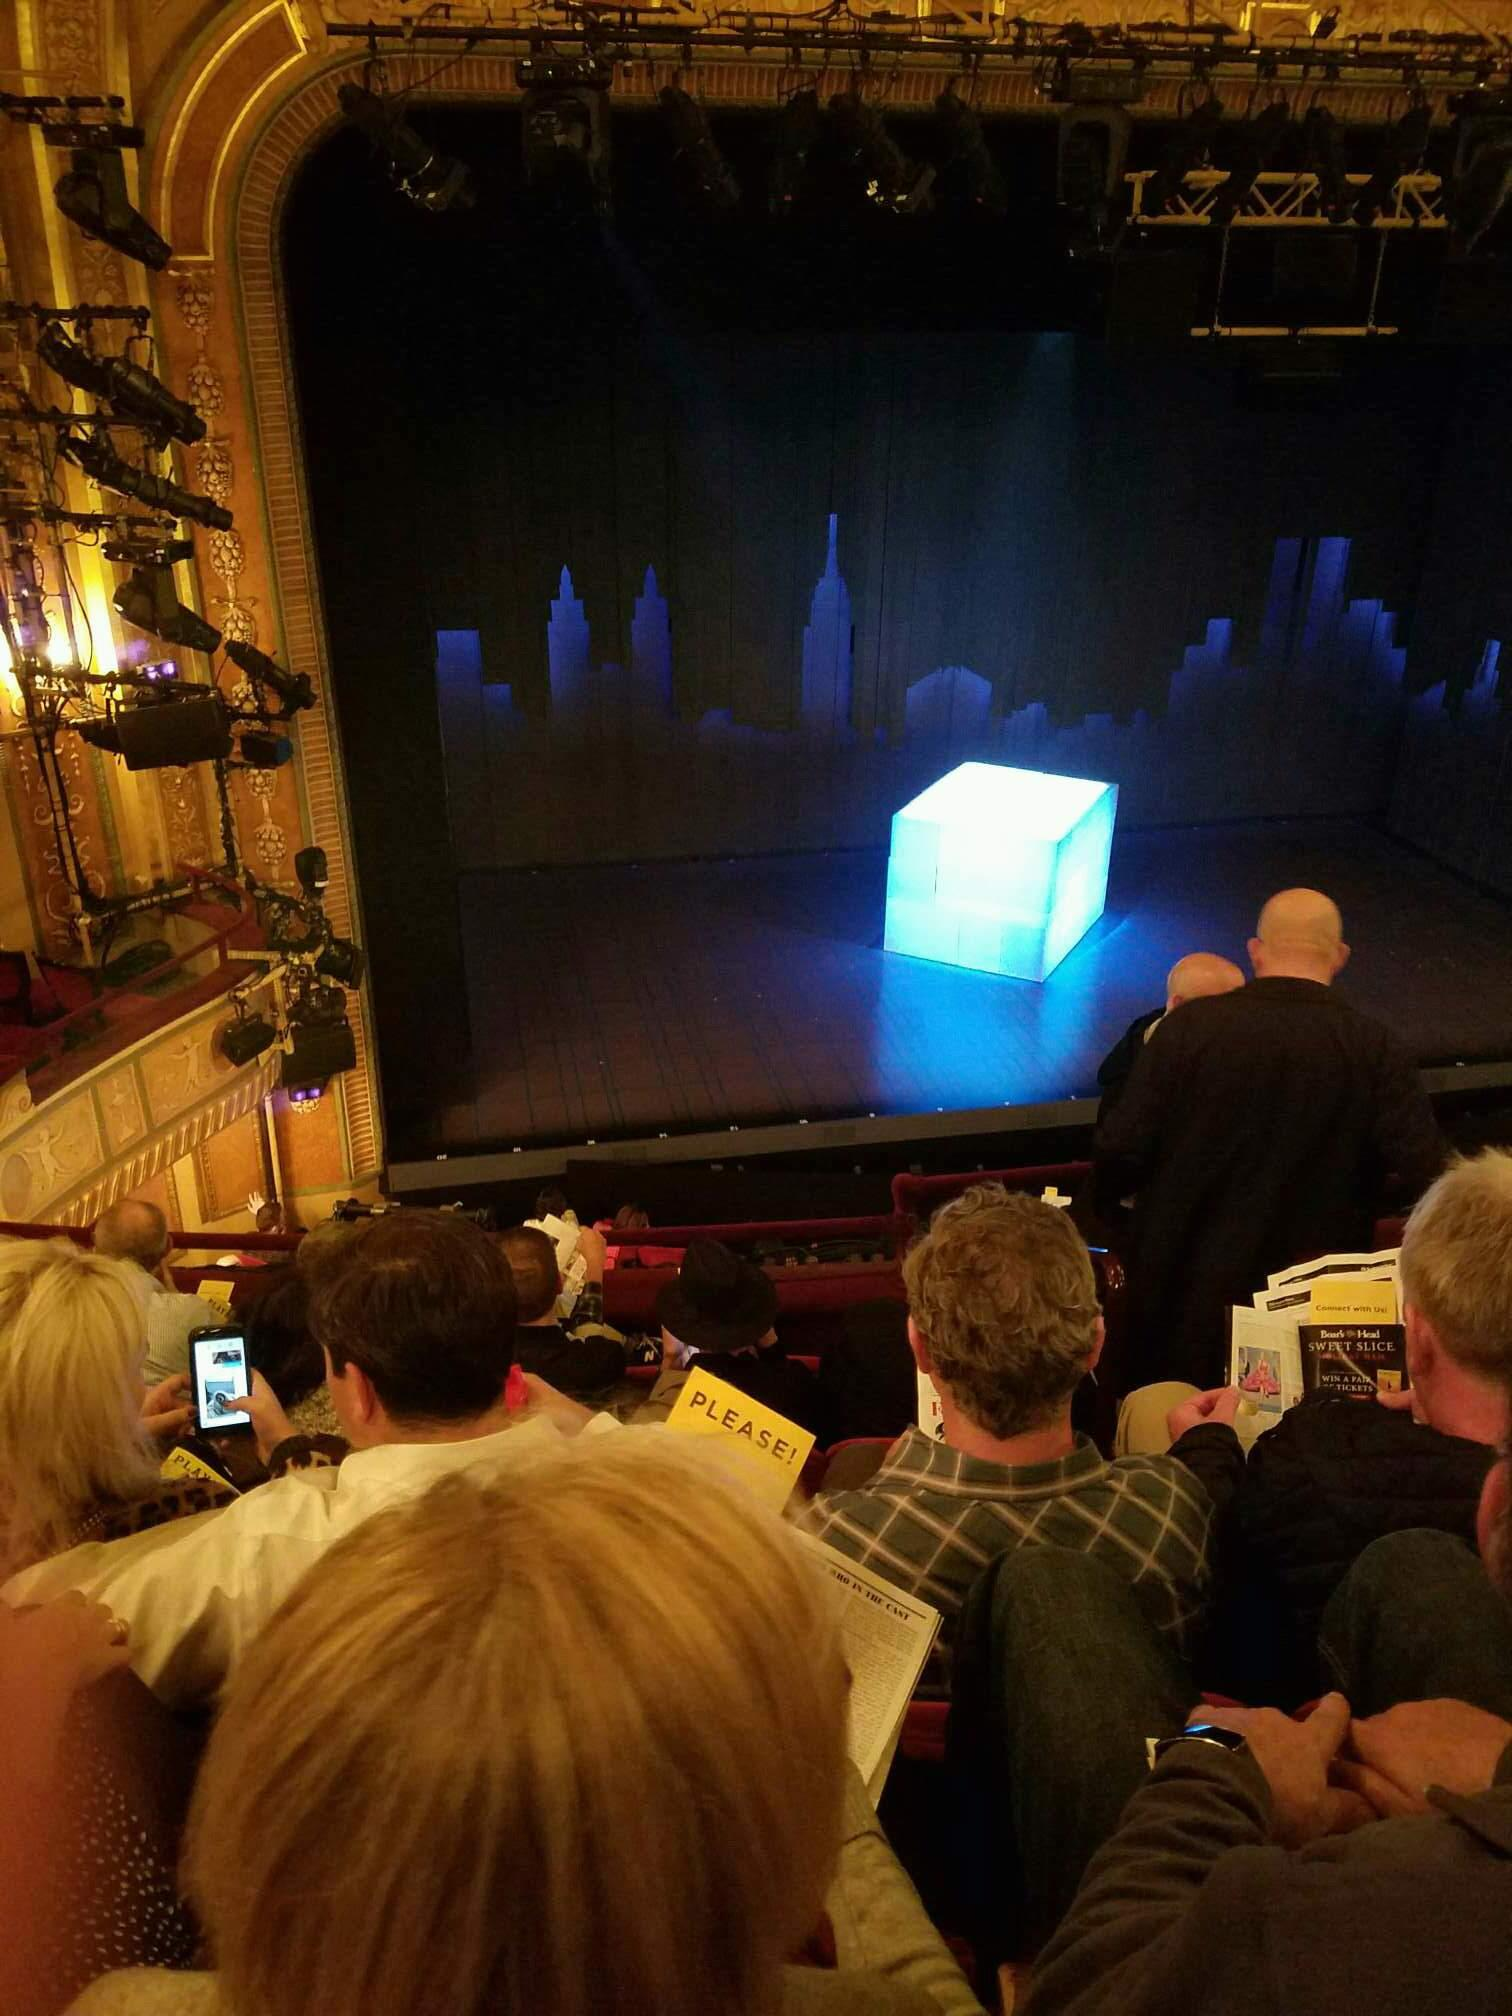 Walter Kerr Theatre Section Mezzanine L Row F Seat 5